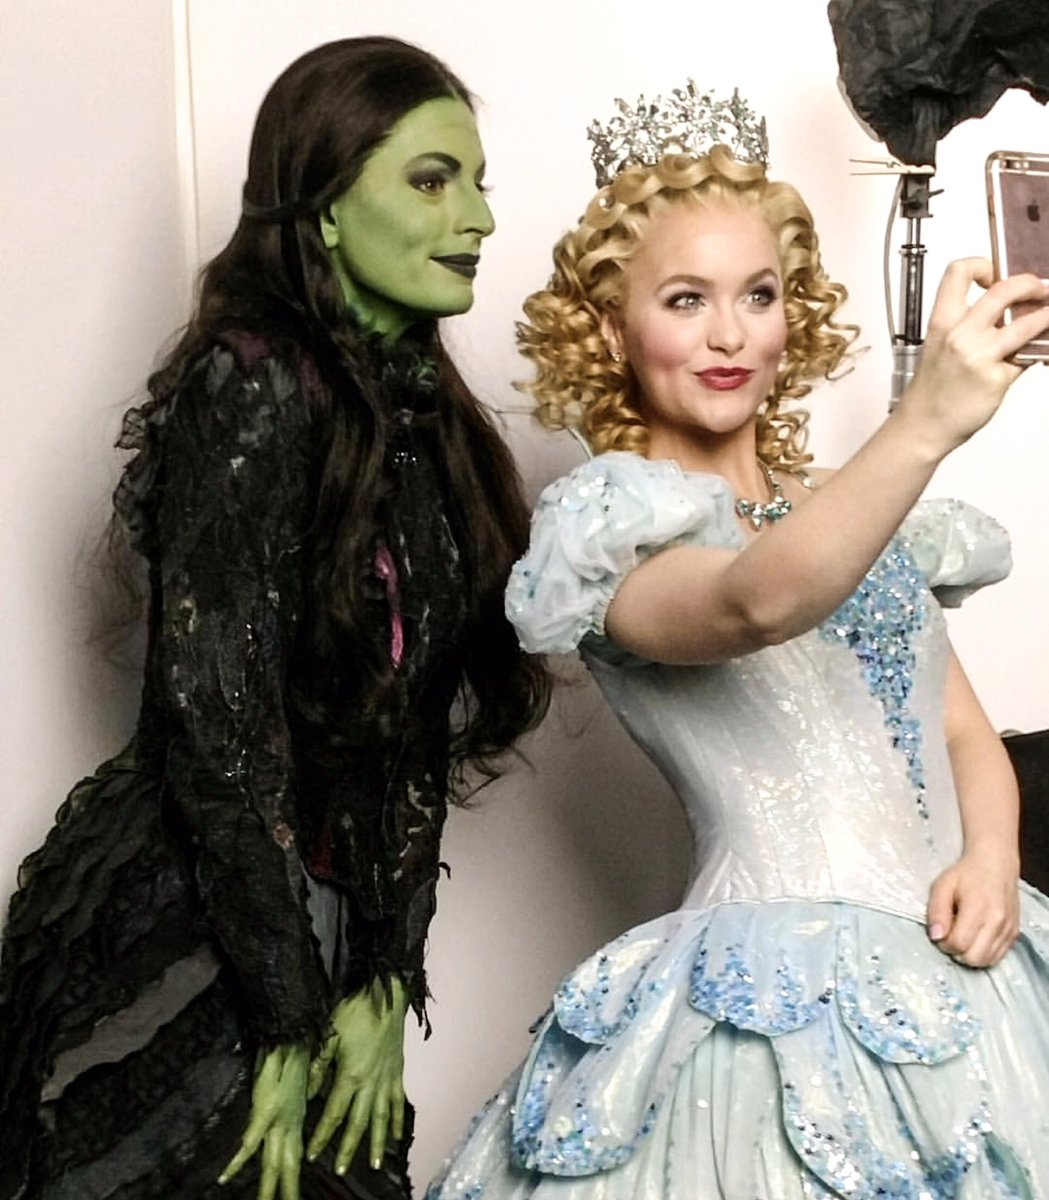 WICKED The Musical on Twitter  A behind-the-scenes look at todayu0027s media shoot with @amandajanecoop (Glinda) and @jackieburnsnyc (Elphaba) for @Situation.  sc 1 st  Twitter & WICKED The Musical on Twitter: